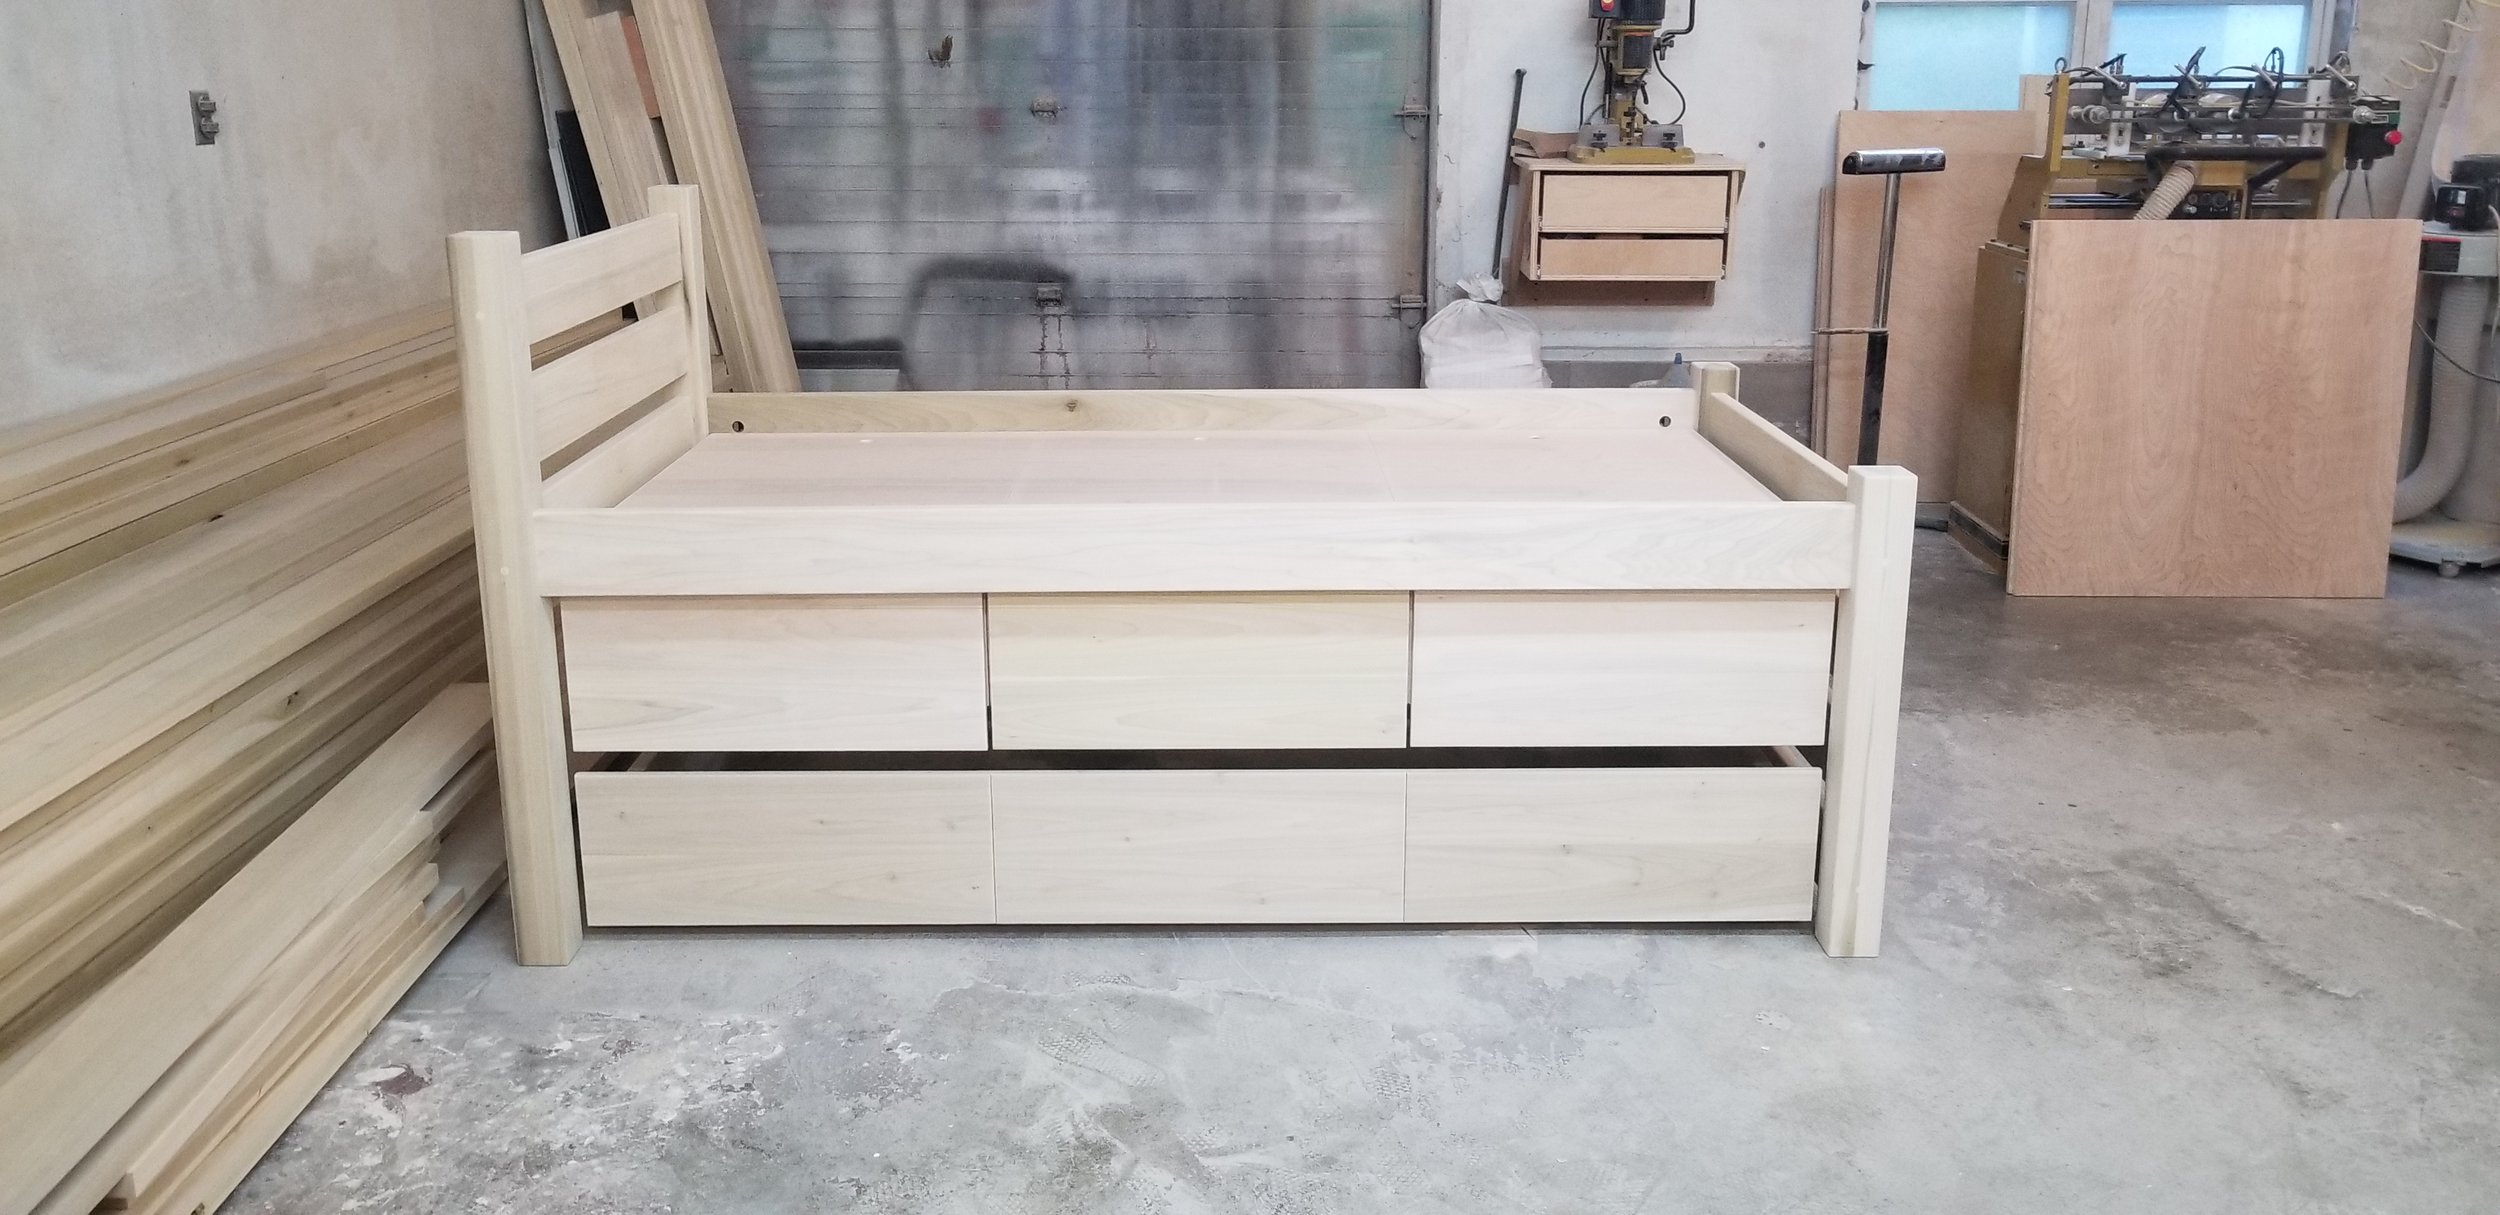 #43 MAINE CAPTAIN'S BED UNFINISHED 2.jpg